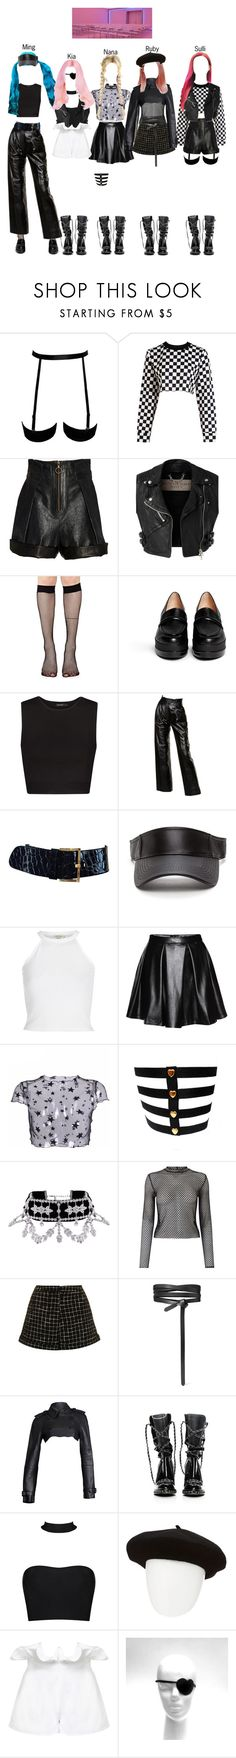 """""""BABY (아기) — 'Incredibly Strange Creatures' MV"""" by officialbaby ❤ liked on Polyvore featuring Philosophy di Lorenzo Serafini, Burberry, Music Legs, Robert Clergerie, MANGO, Yves Saint Laurent, Miss Selfridge, Topshop, Isabel Marant and Chanel"""